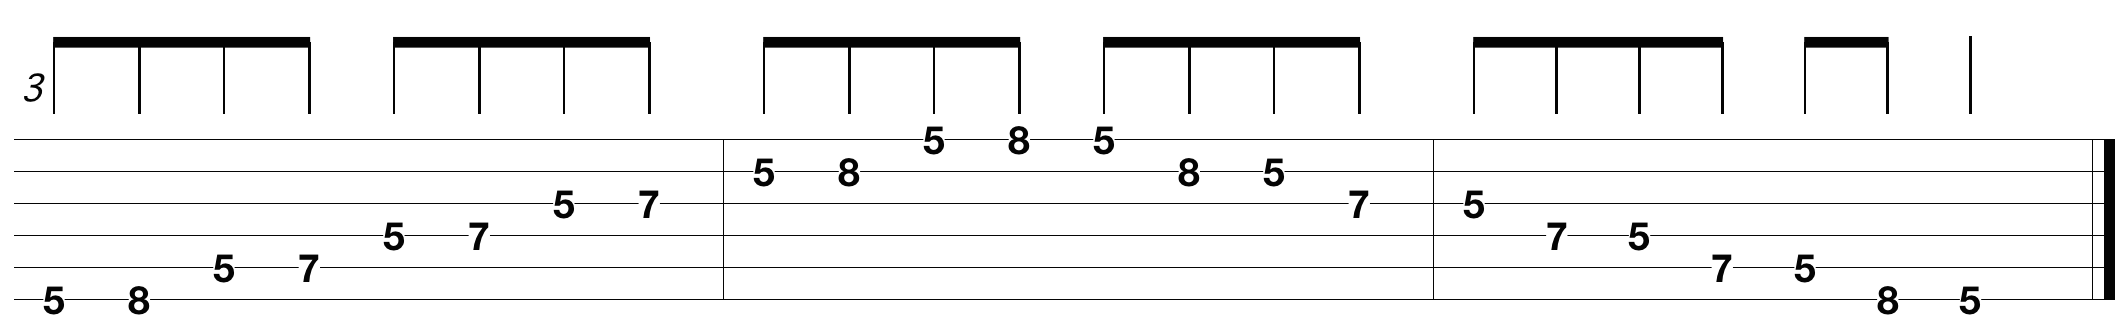 super-easy-guitar-tabs_3.png